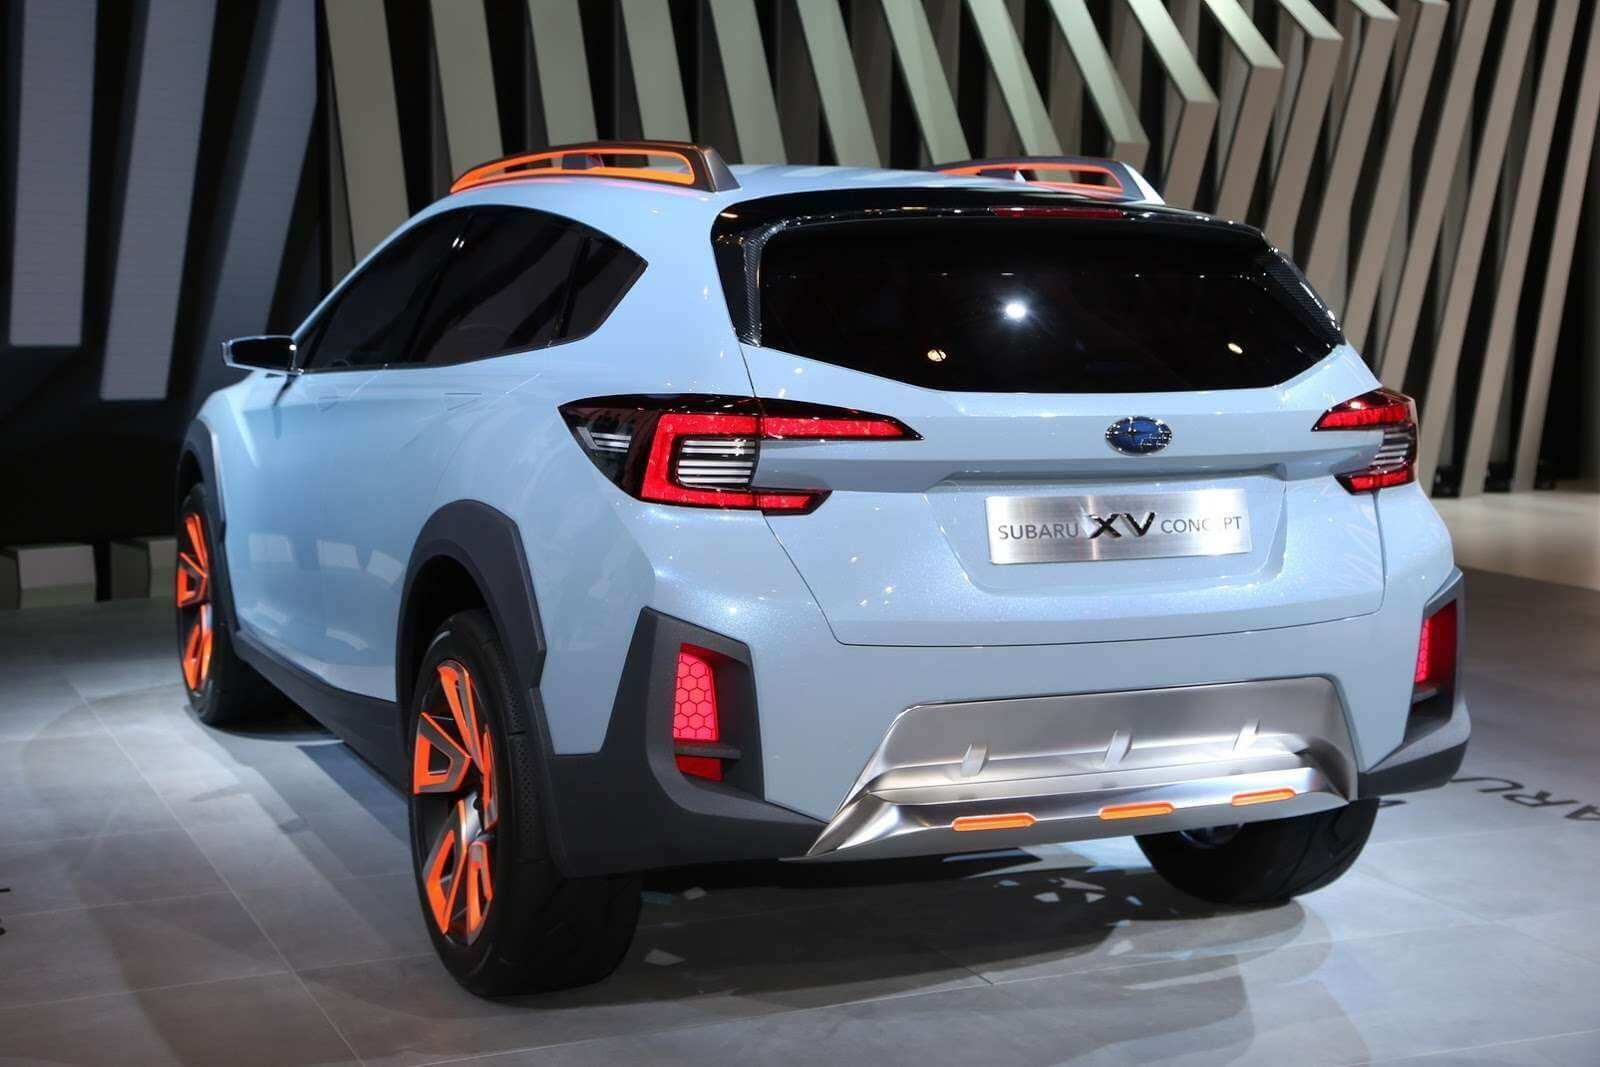 87 Best Review Subaru Xv 2020 New Concept Redesign with Subaru Xv 2020 New Concept